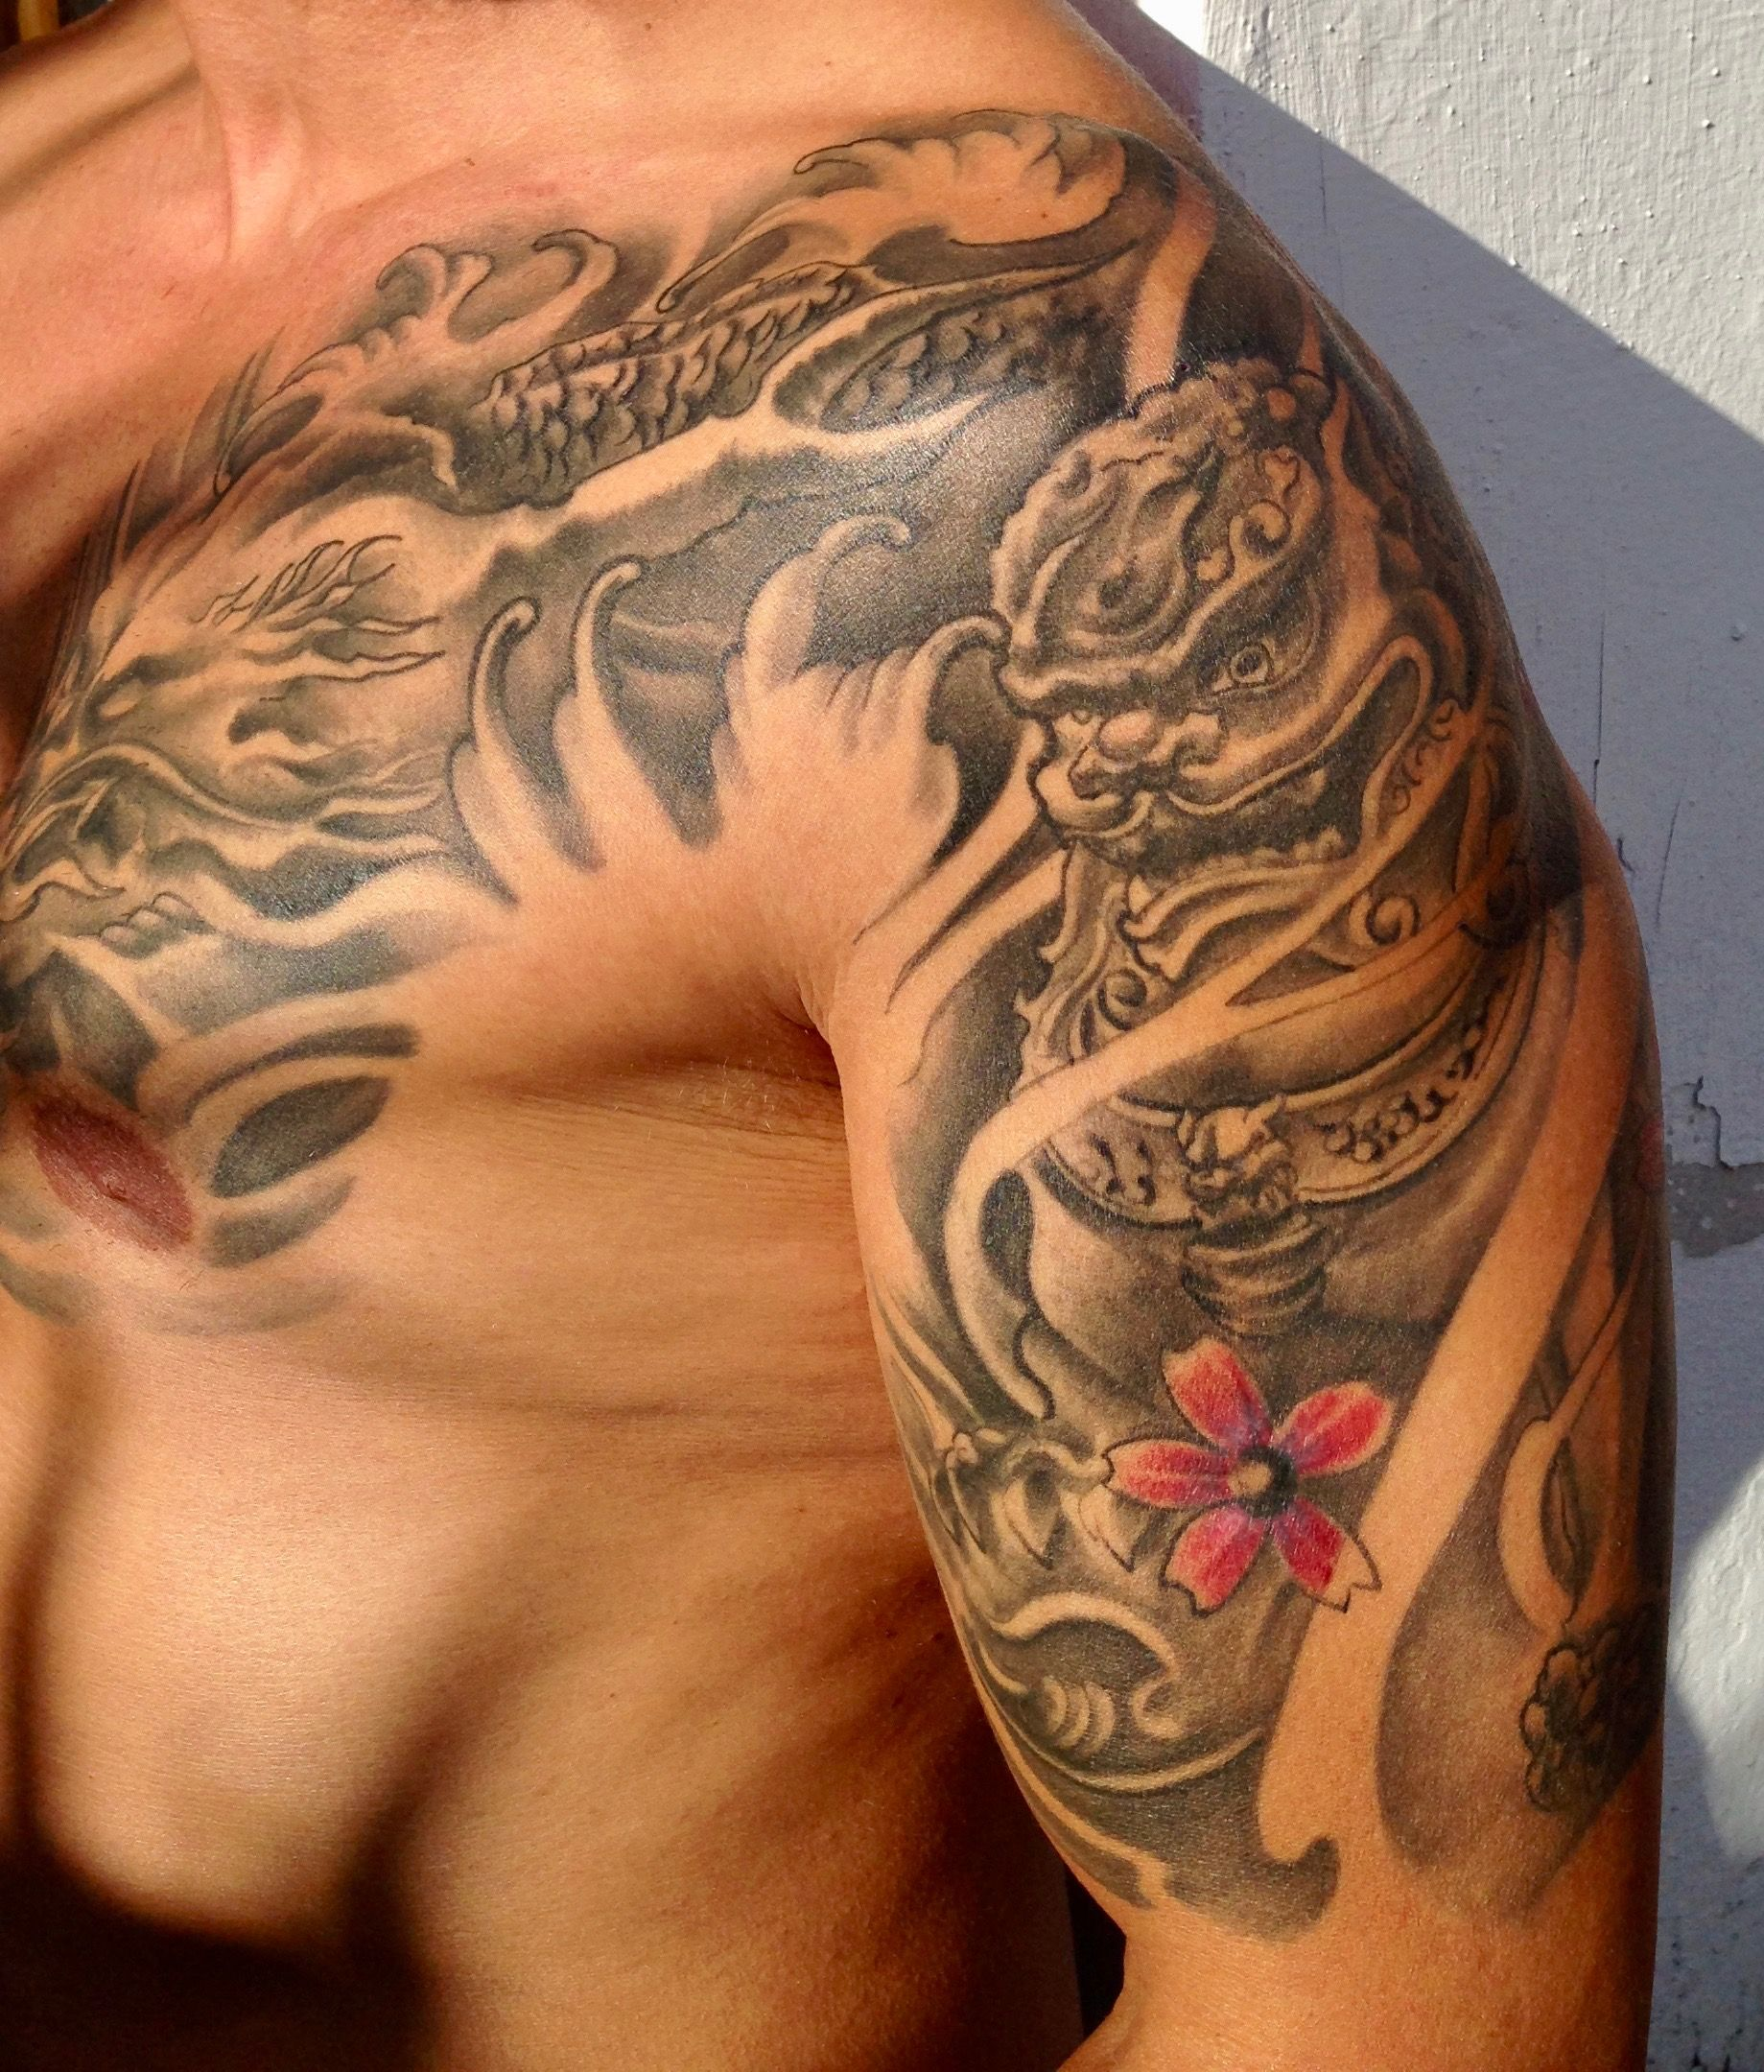 Tattoo Sleeve Foo Dog With Cherry Blossoms Dragon Chest Dragon Tattoo Tattoos Sleeve Tattoos